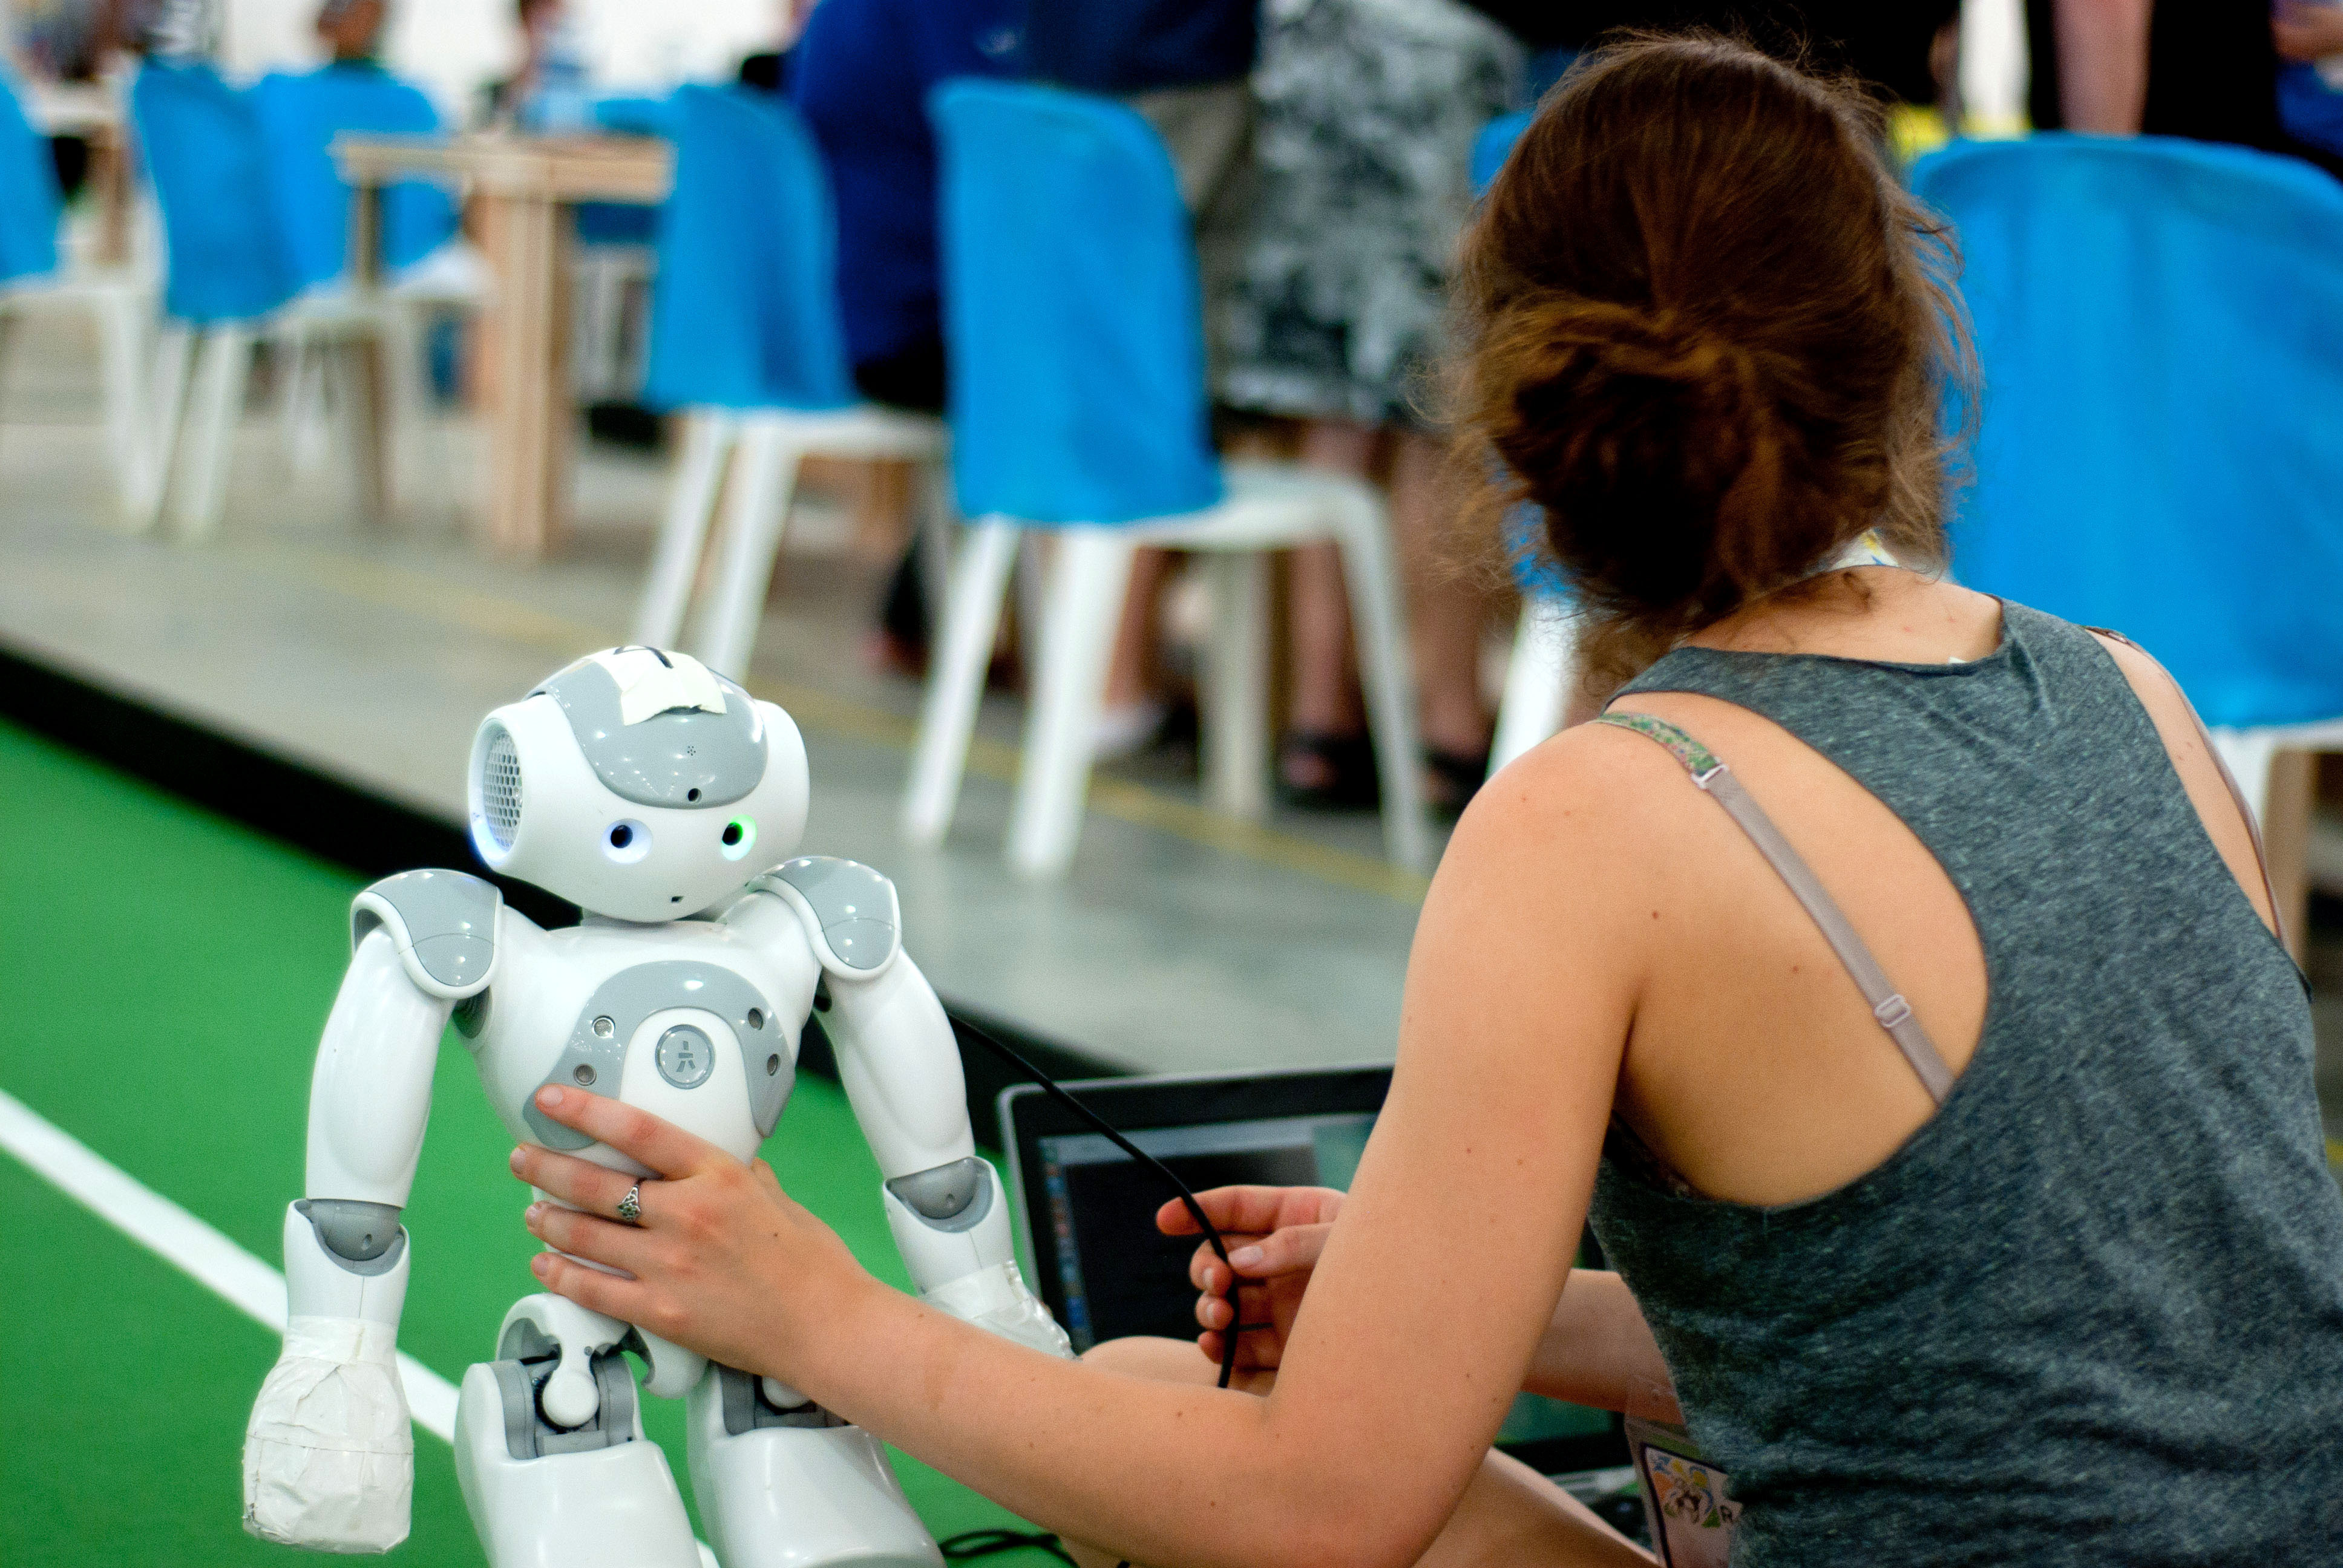 The first day of the RoboCup Robot Soccer Championship in João Pessoa, Brazil on July 21, 2014.